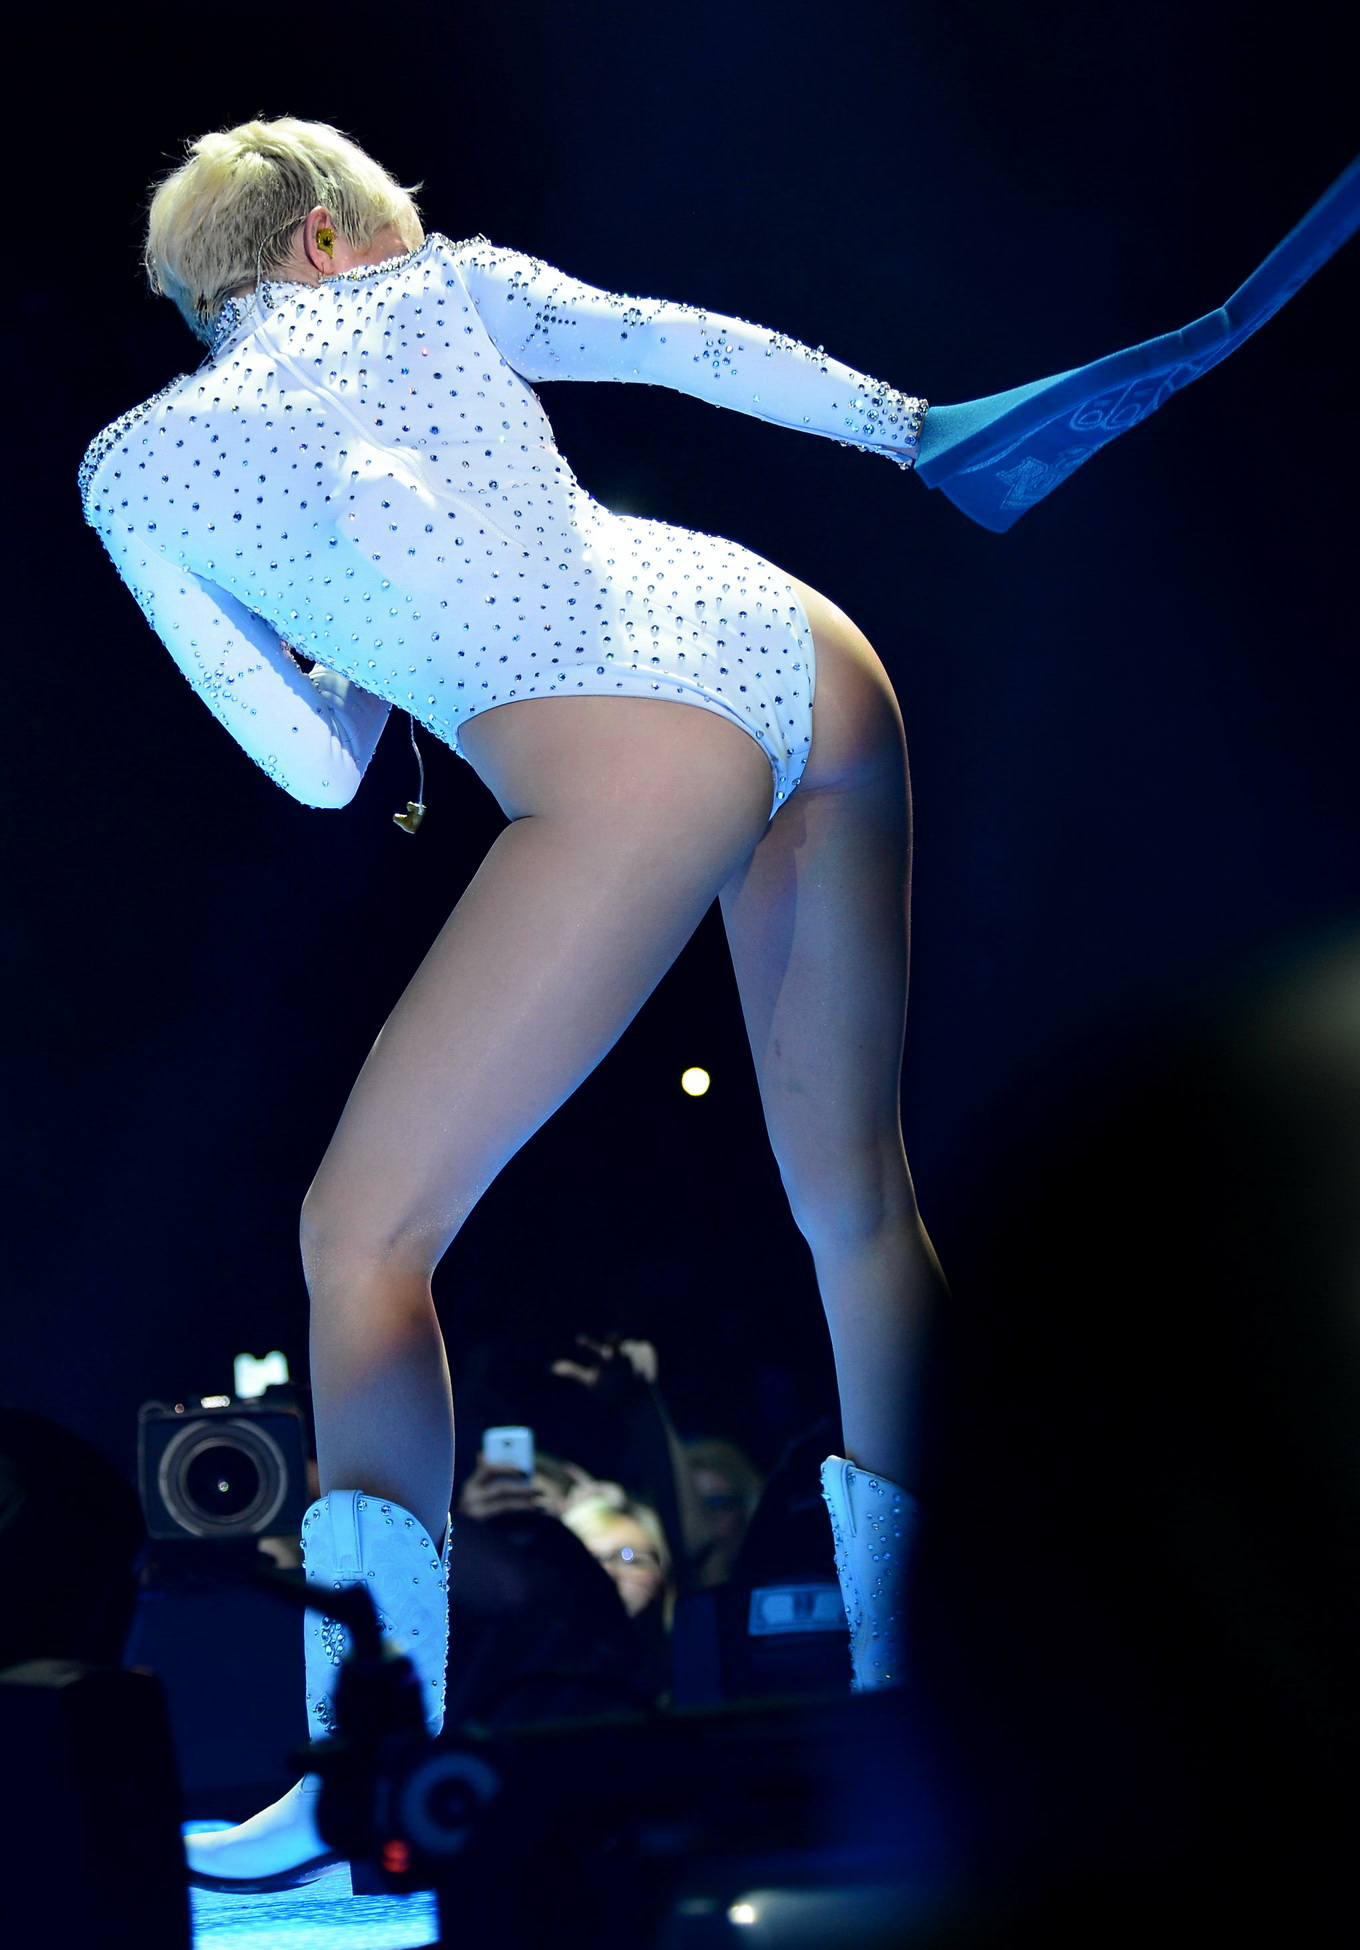 Miley cyrus shows her ass